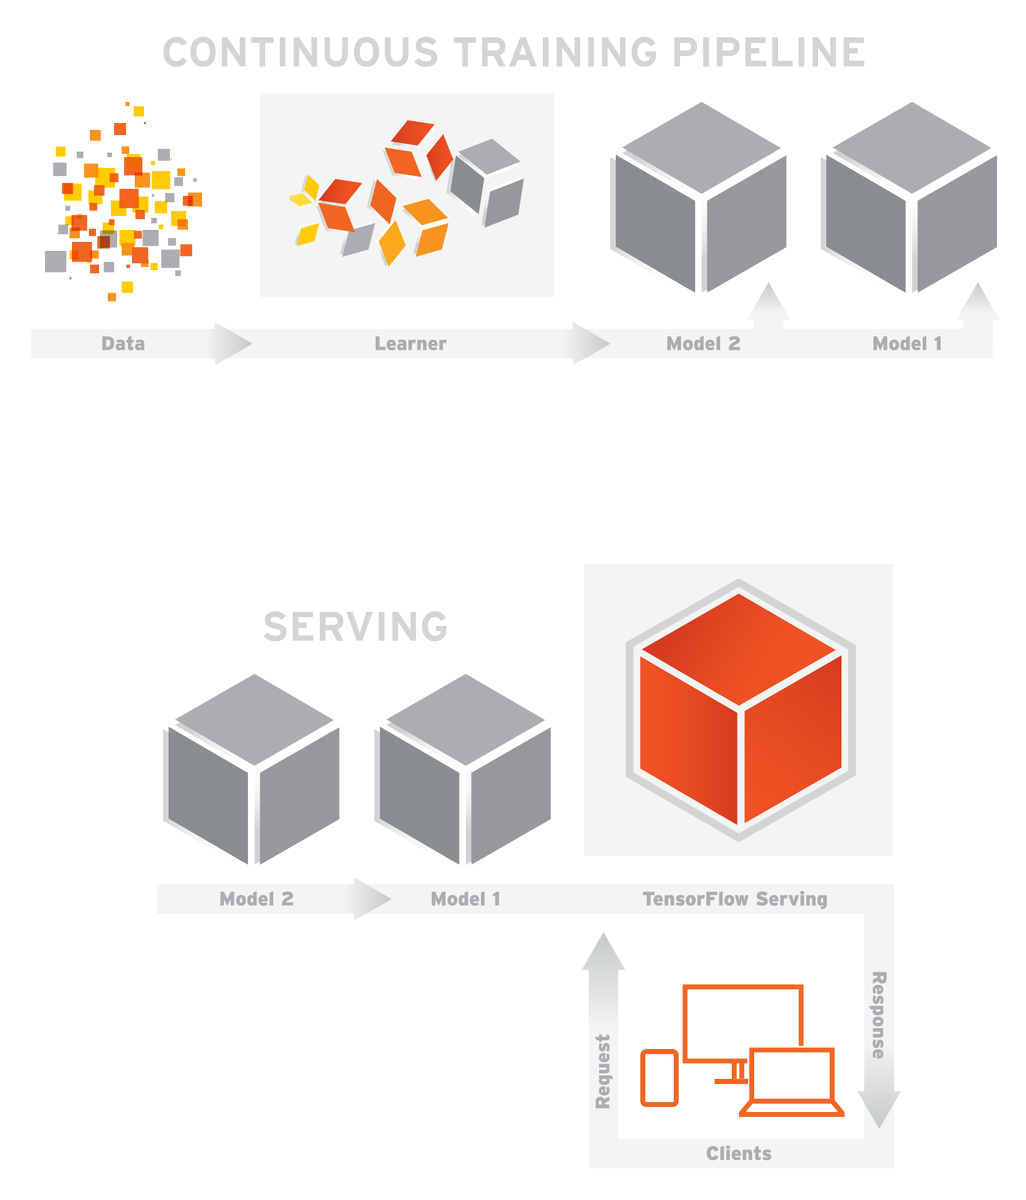 Utilize the power of machine learning in your next product with TensorFlow Serving - https://t.co/4Ij56cKZG7 https://t.co/wRuqkLfv2m